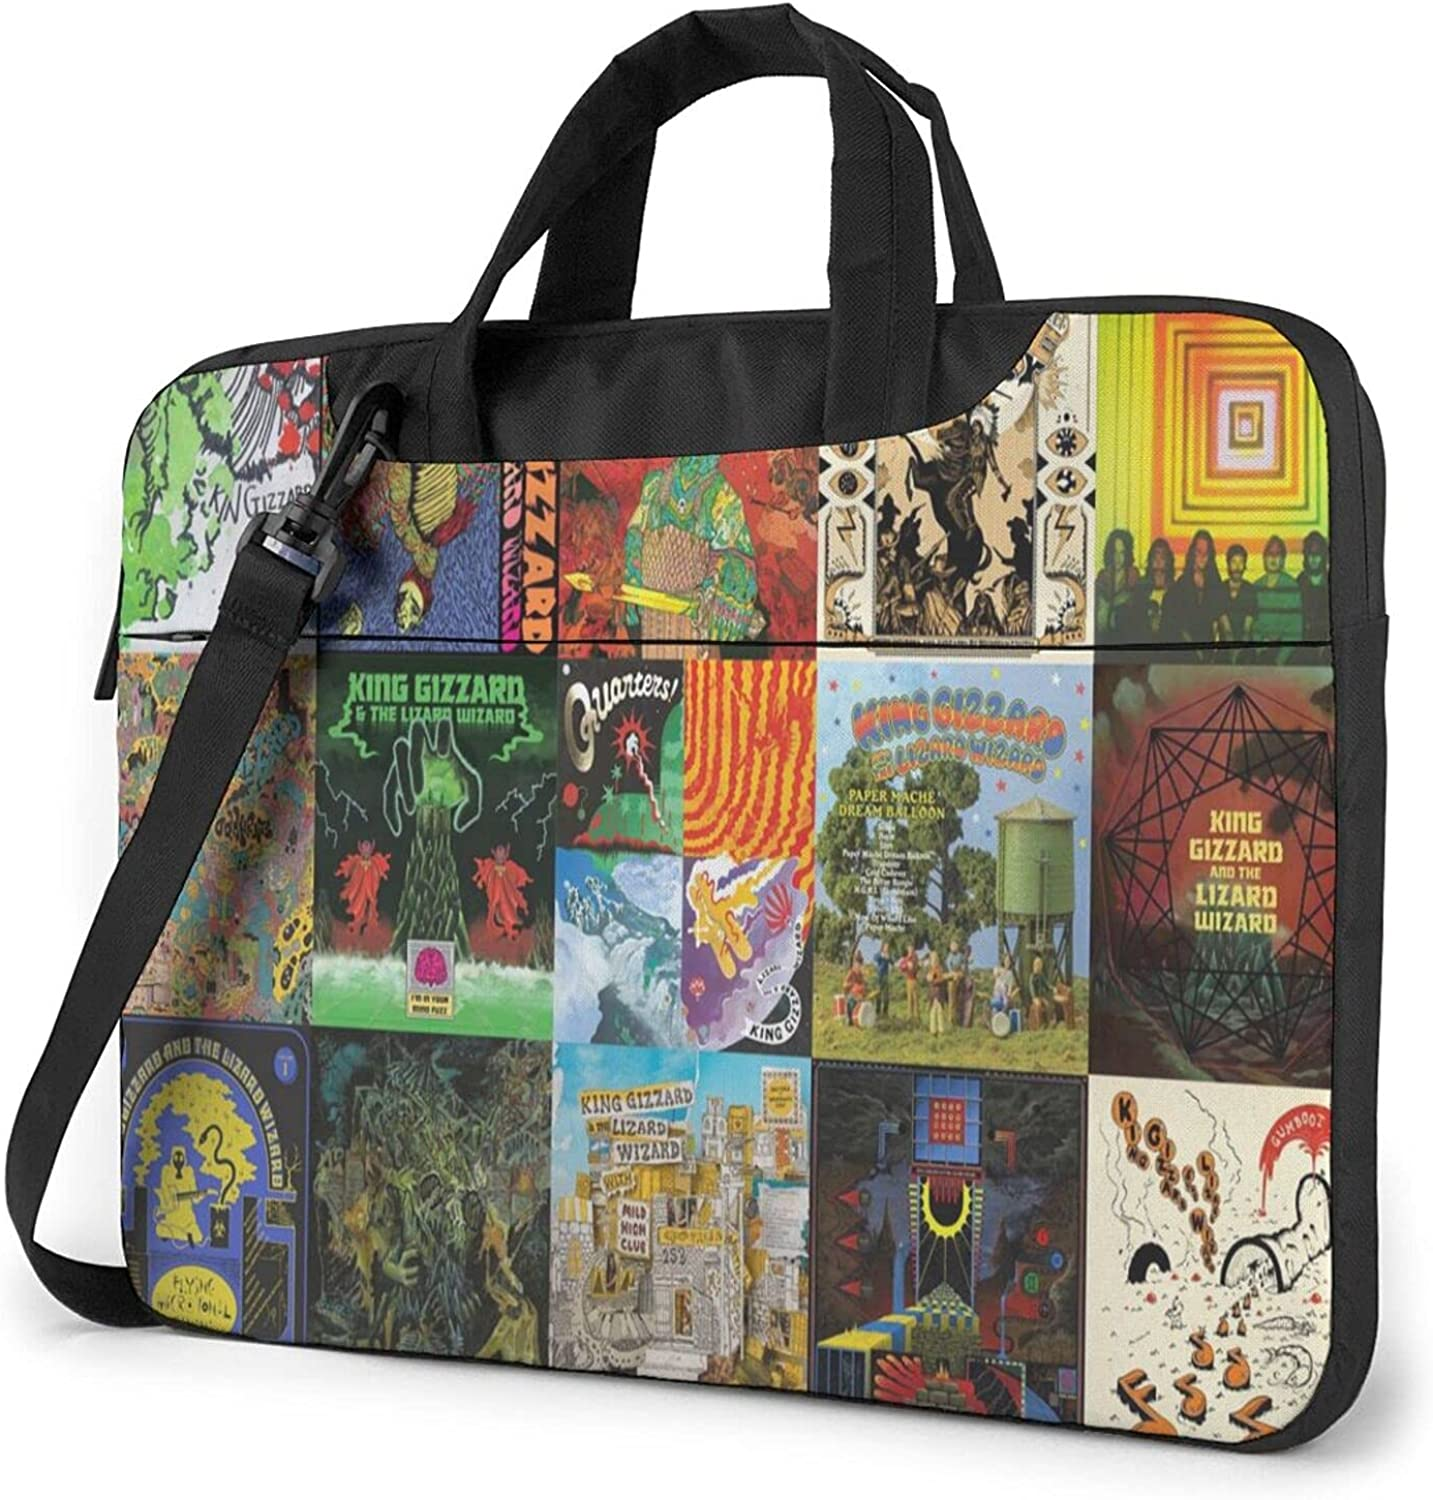 Laptop Sleeve Case Computer Bag Max 75% OFF King Lizard Deluxe Arts Gizzard The And